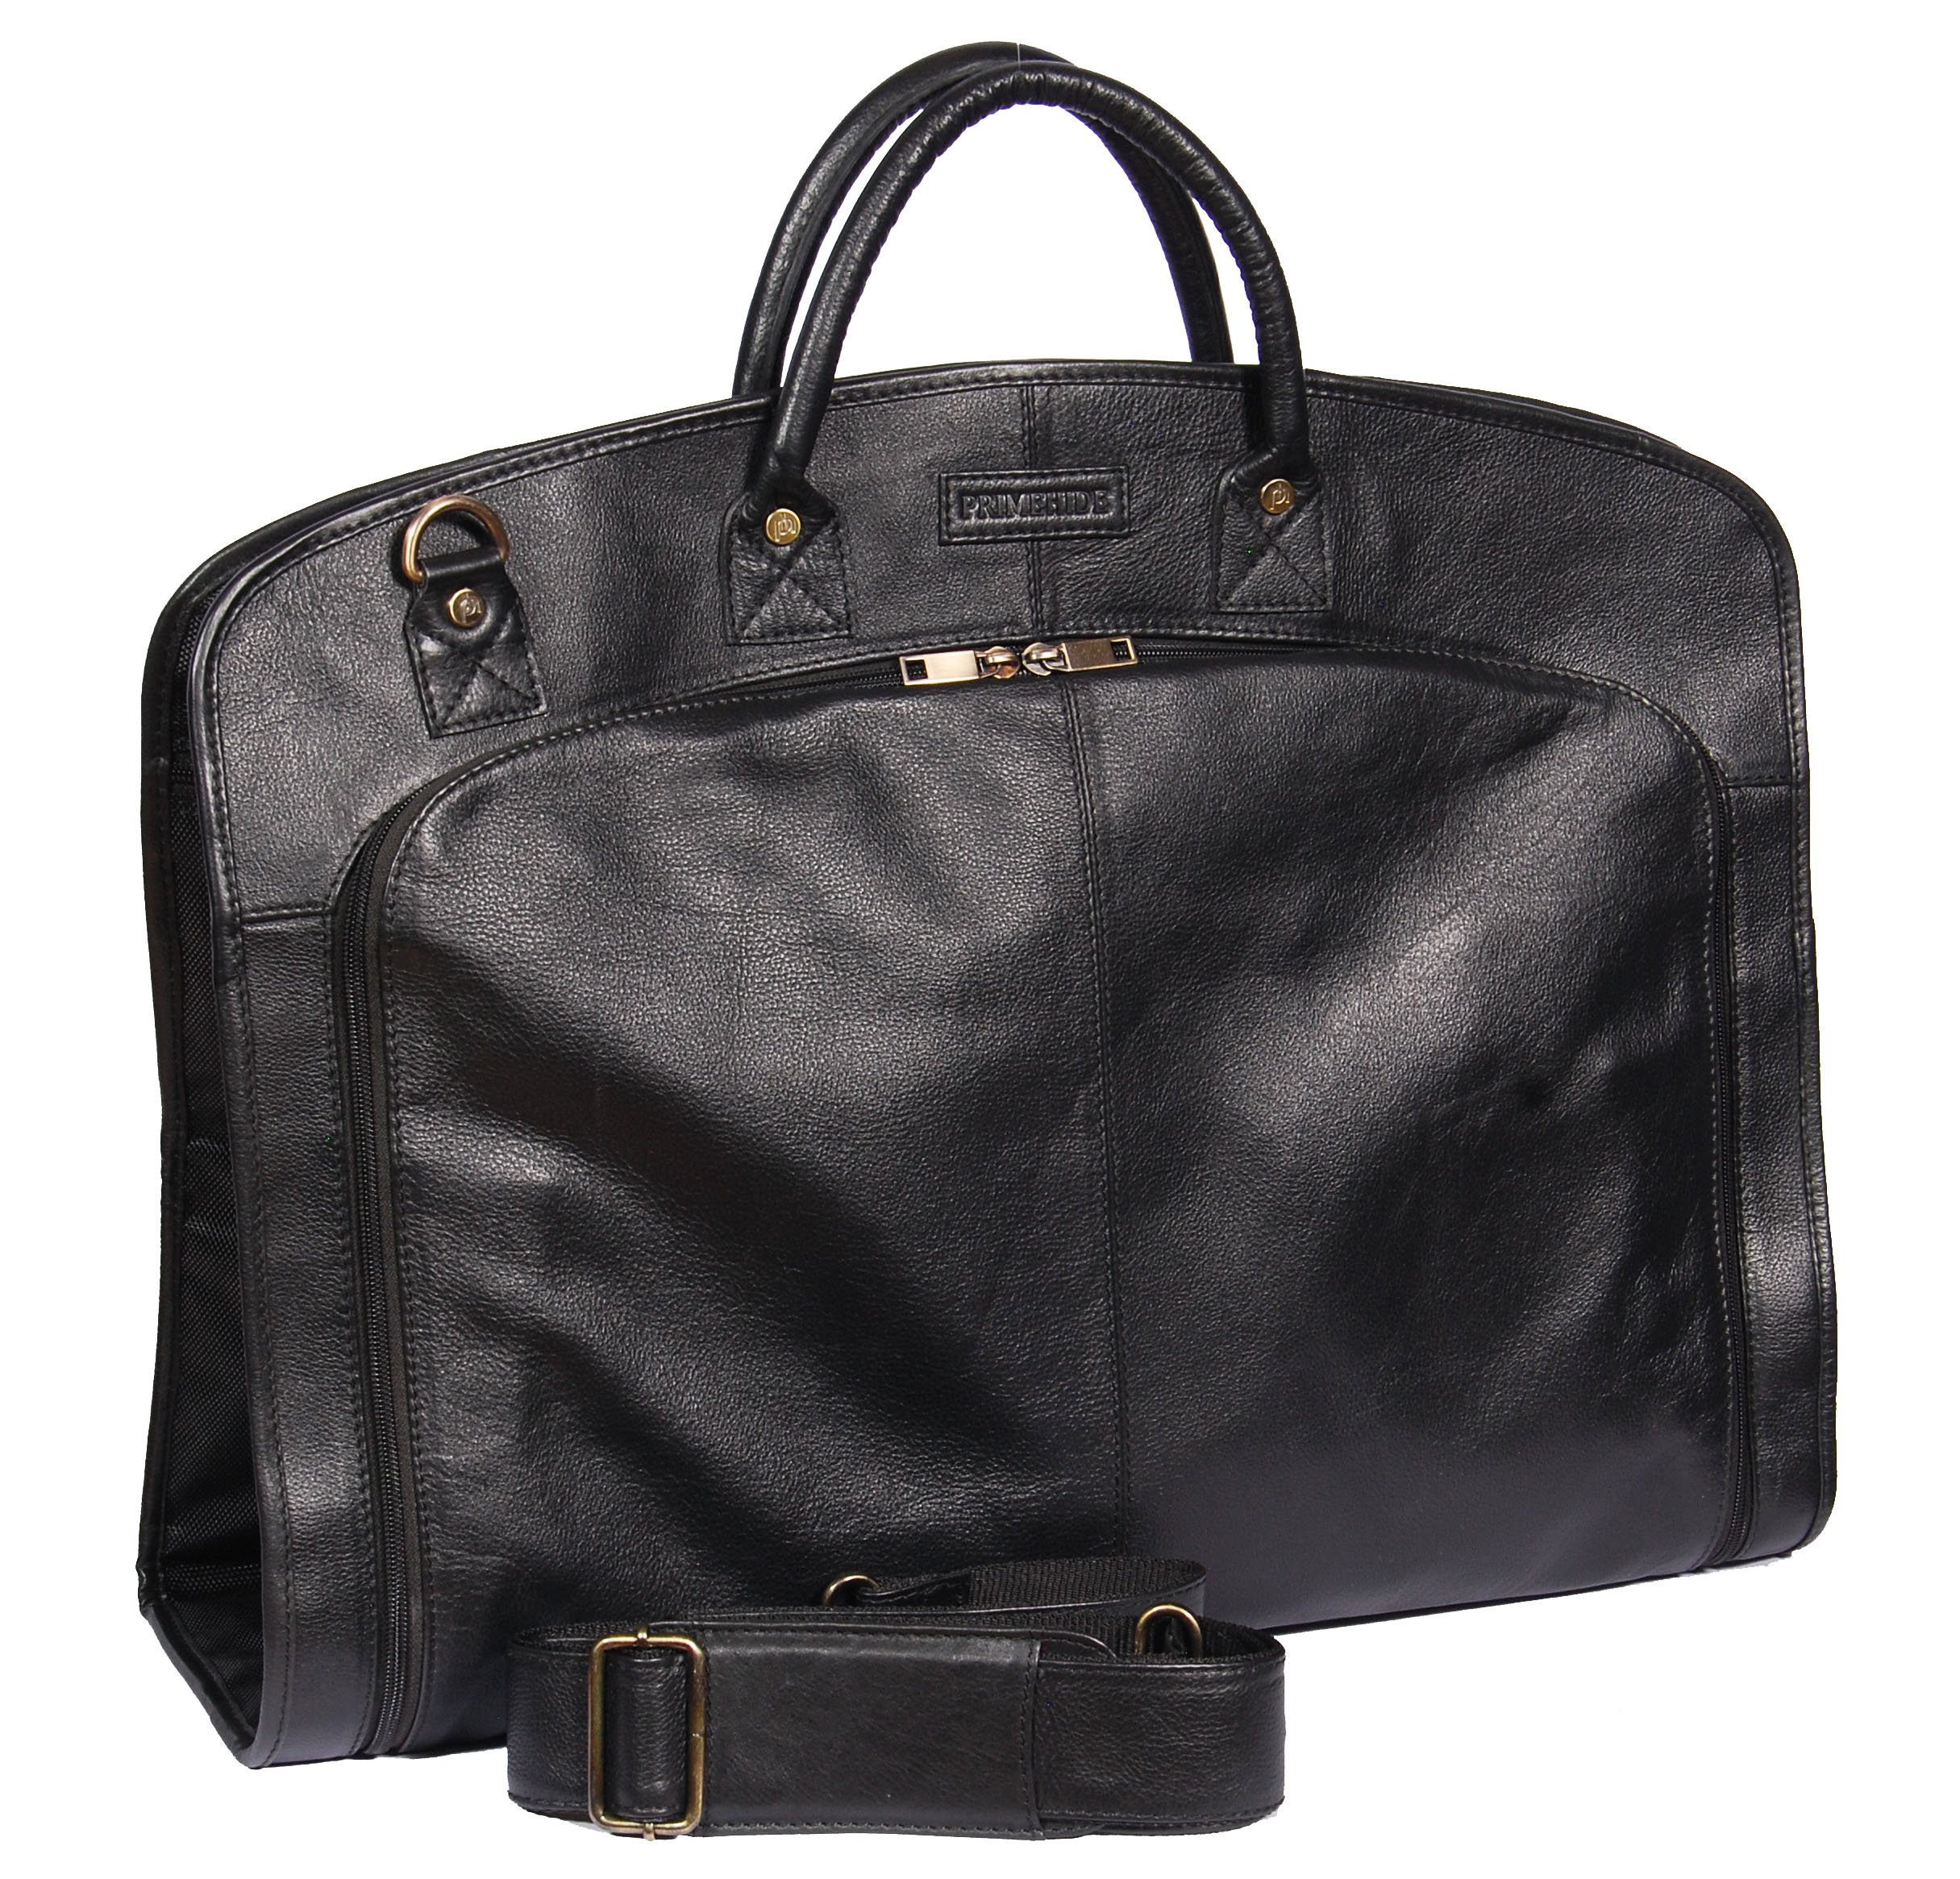 92f4a6d35f Get Quotations · Genuine Soft Leather Suit Carrier Bag Black Dress Garment  Cover Travel Bag A173